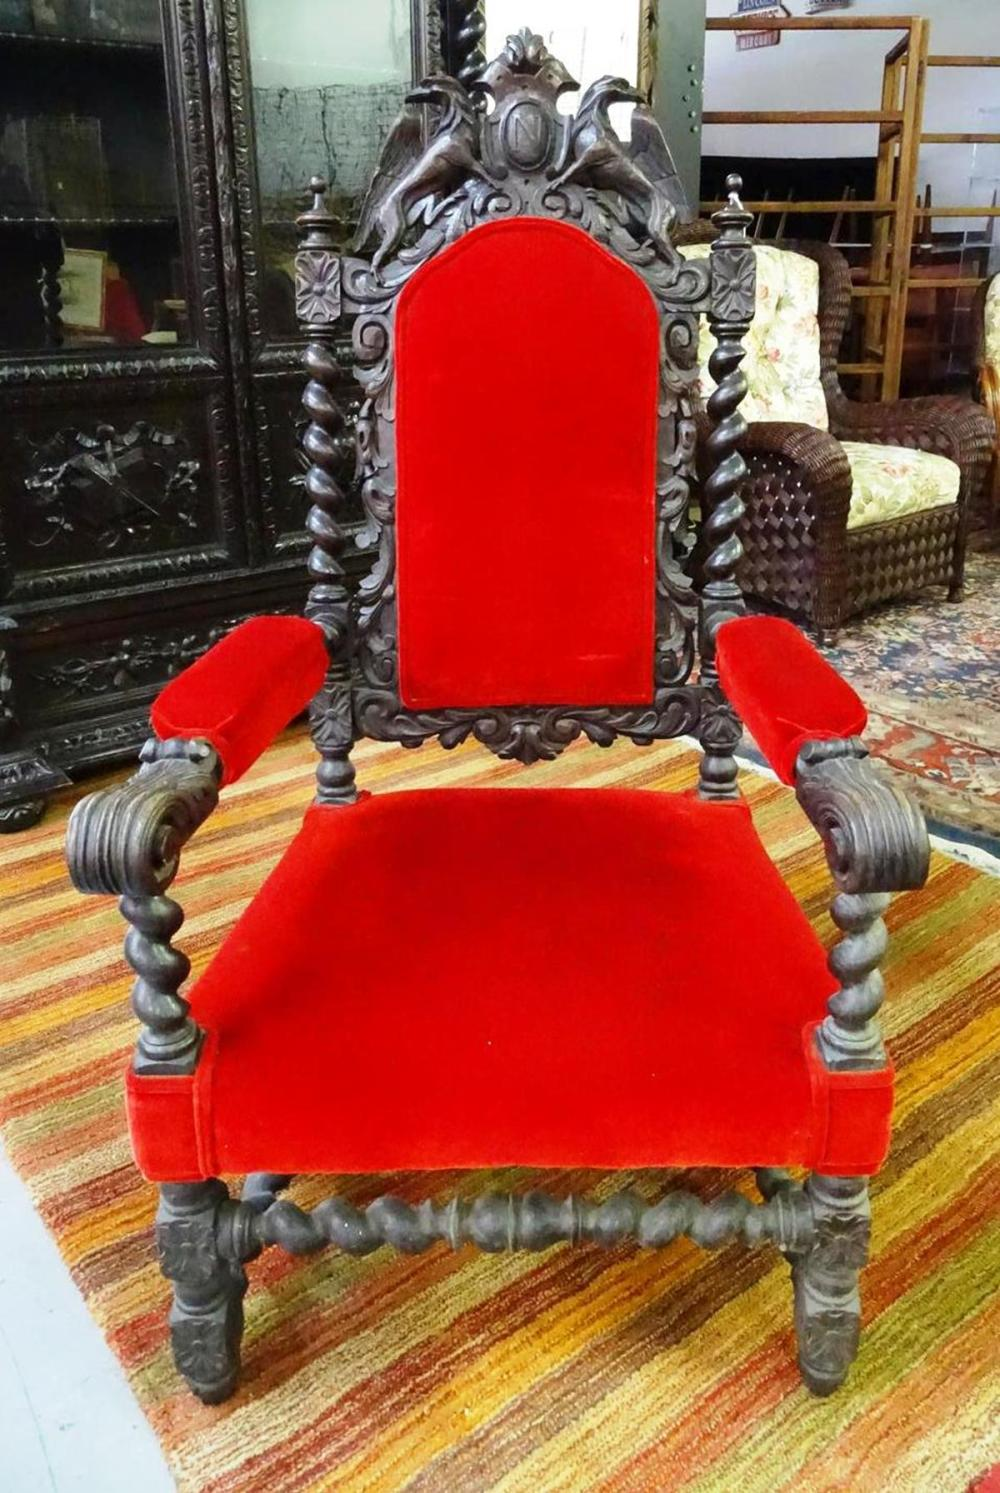 19TH C. FRENCH CARVED THRONE CHAIR